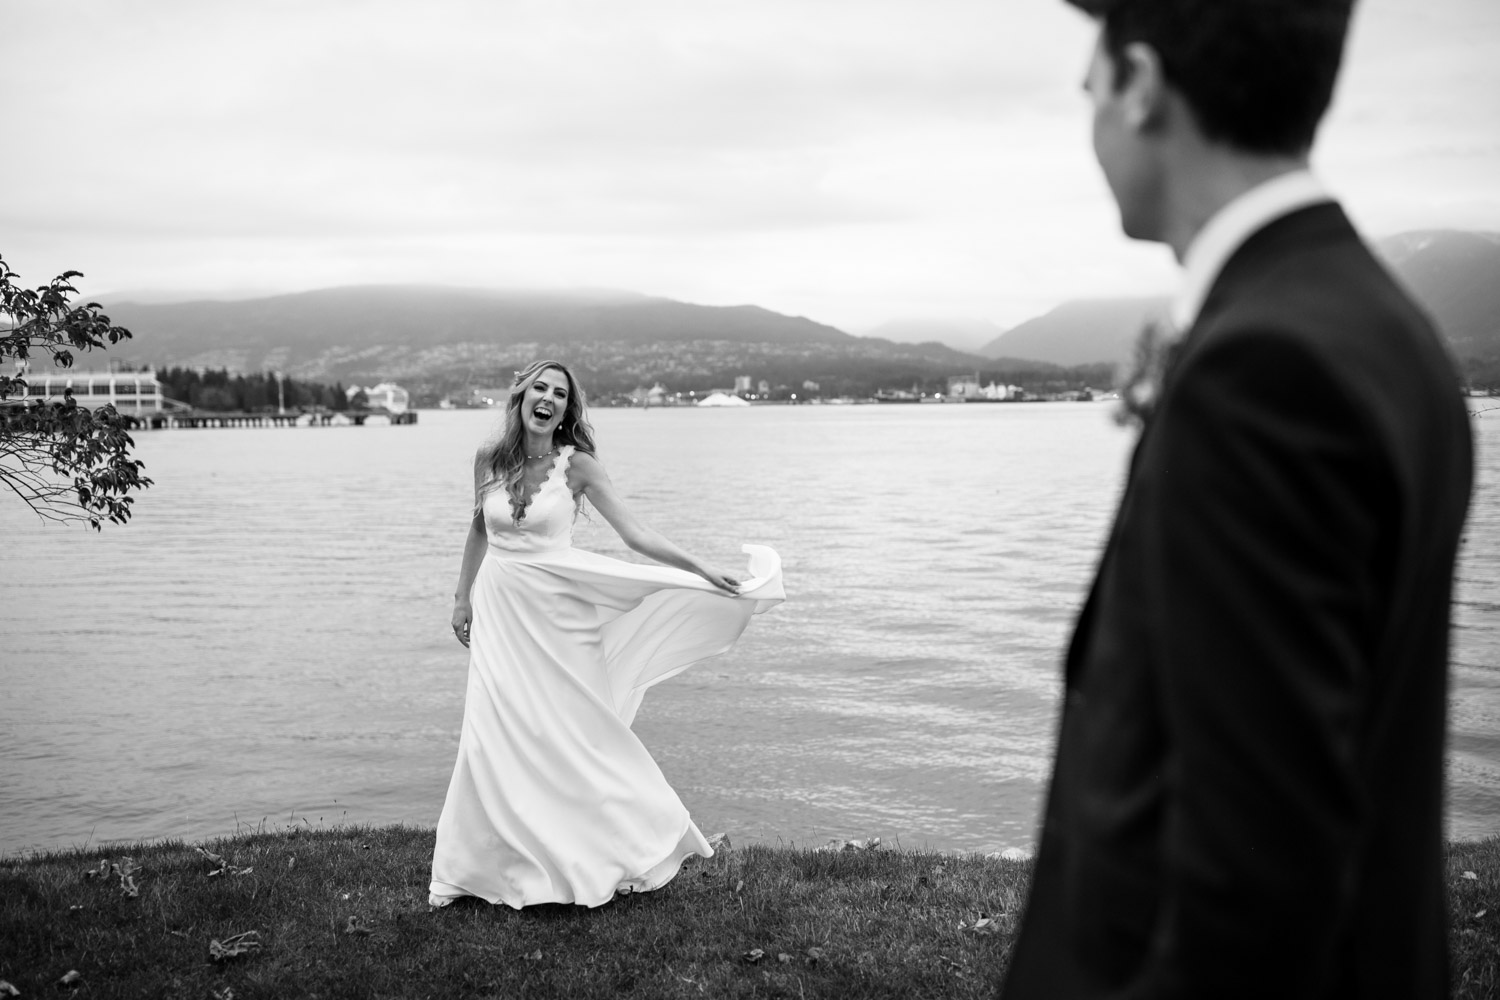 Happy candid fun wedding photo by Vancouver wedding photographer